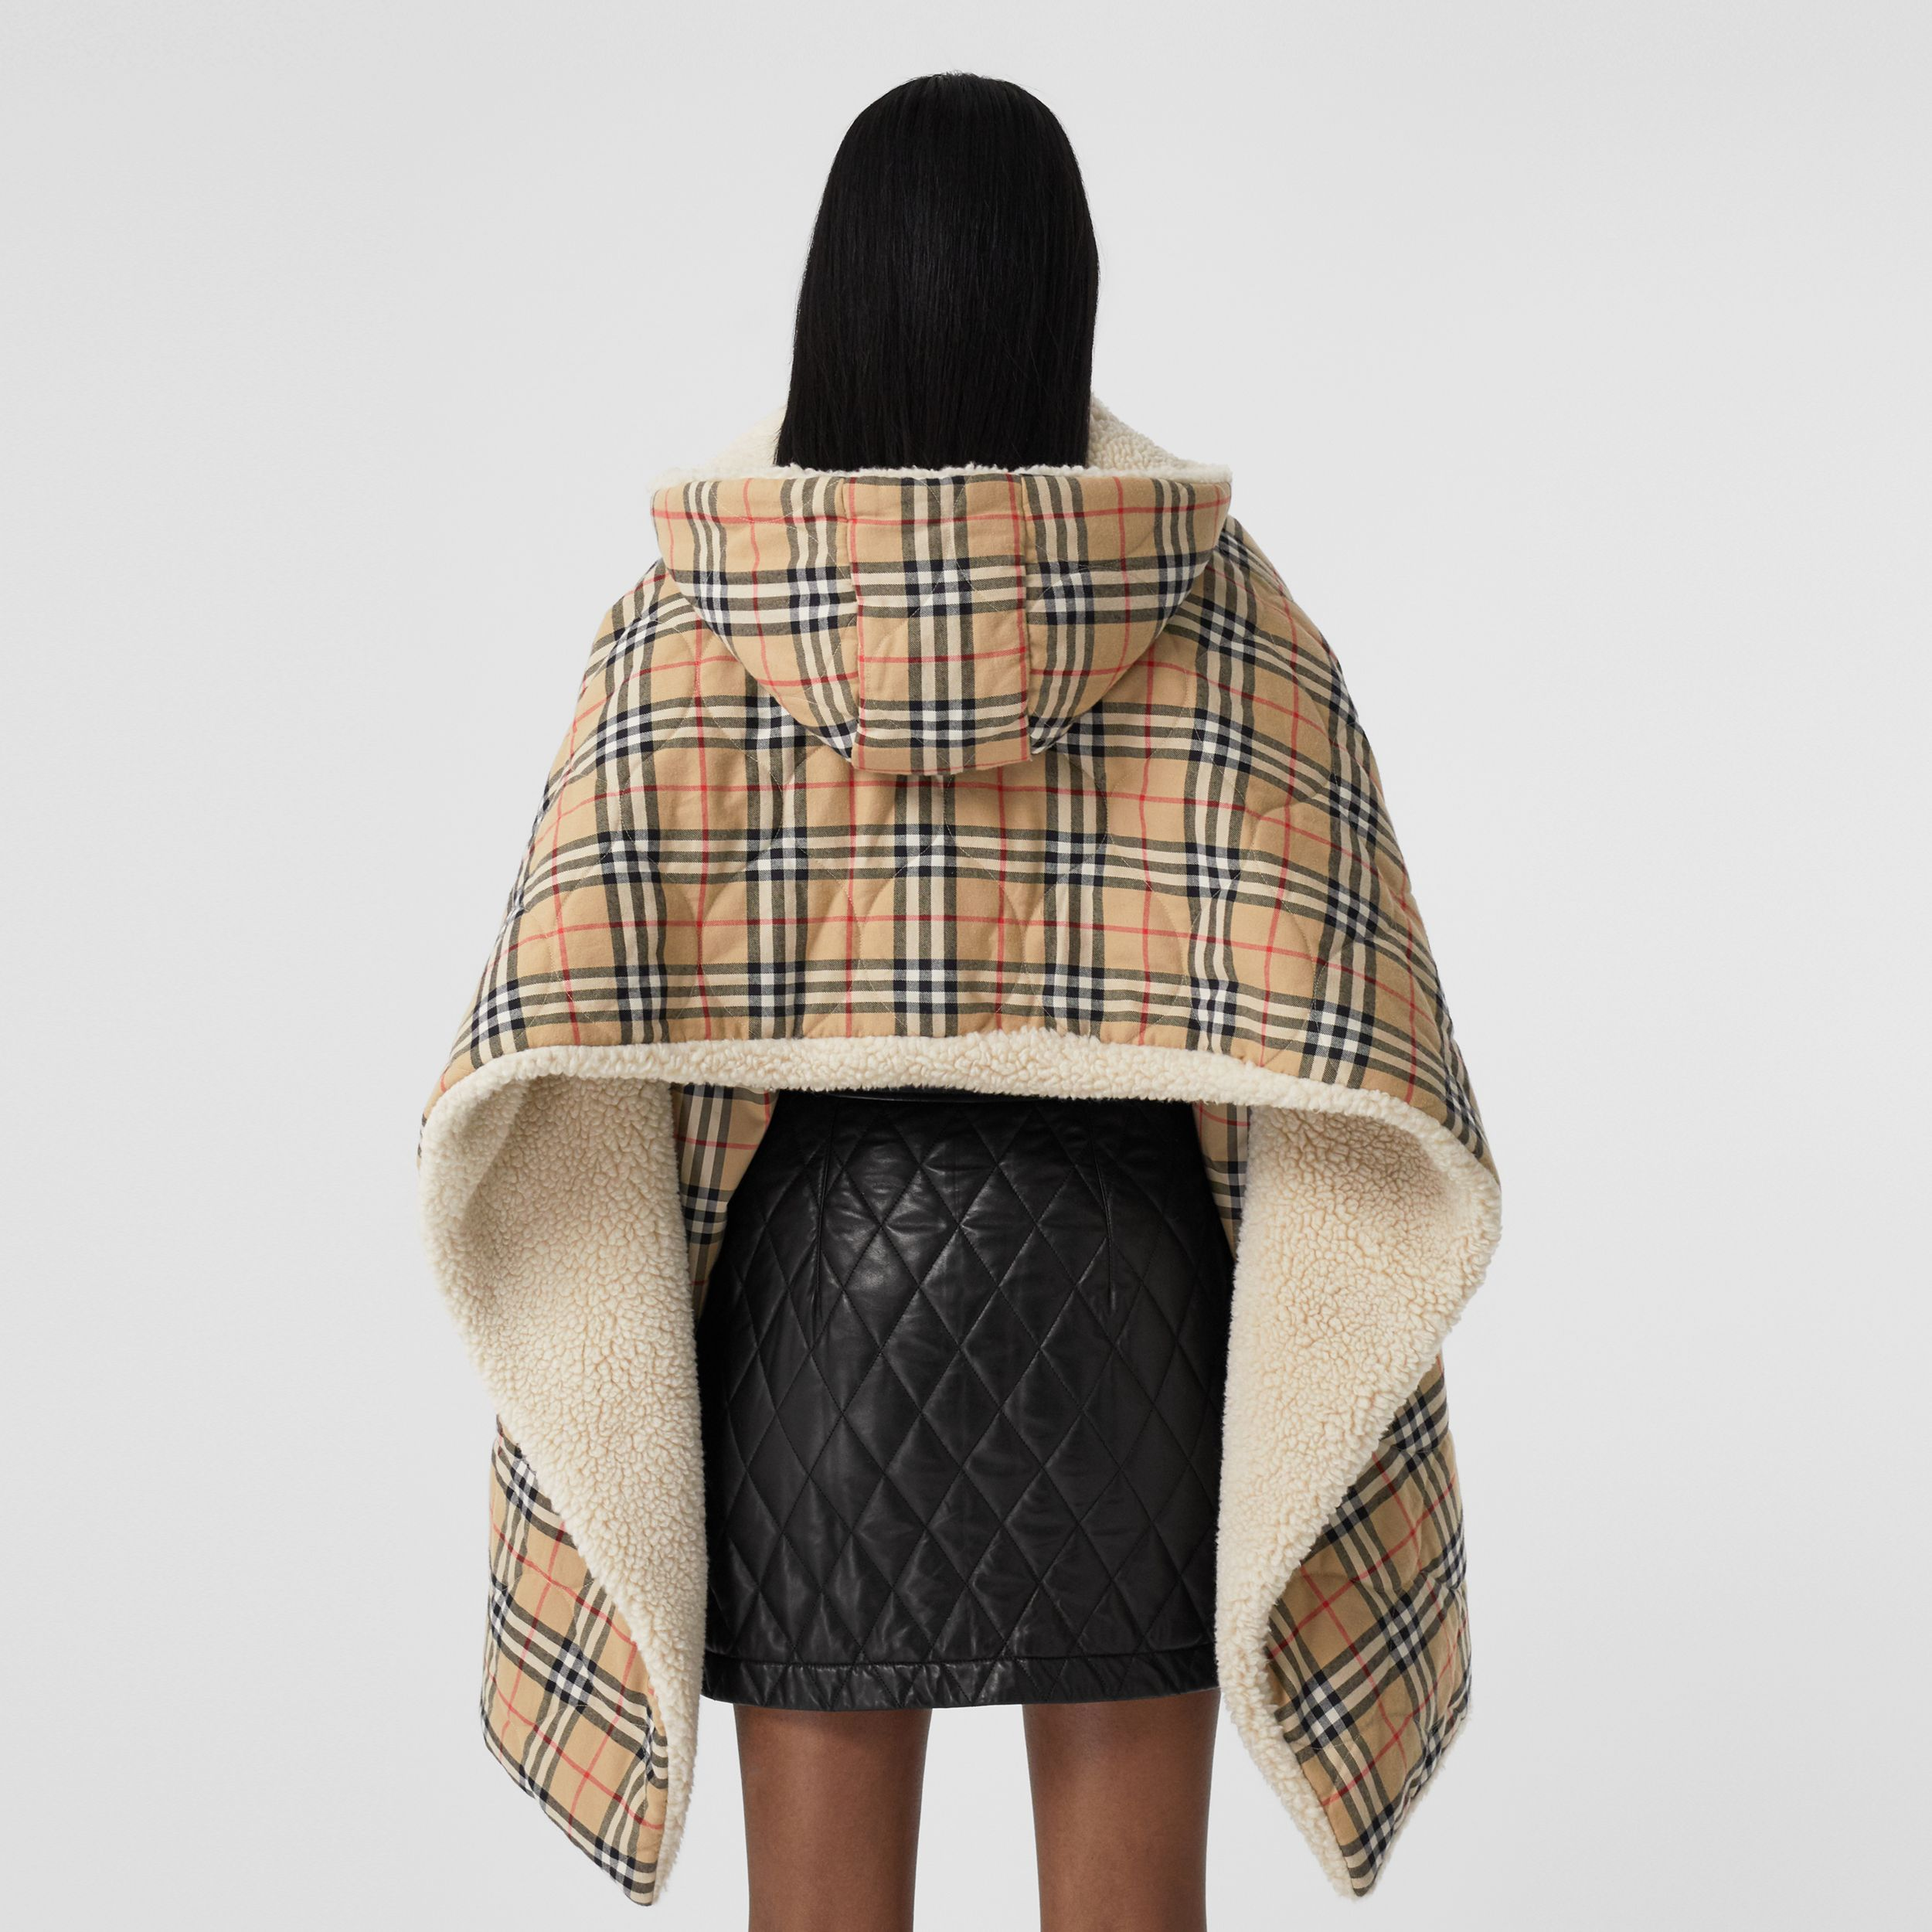 Fleece-lined Vintage Check Cotton Hooded Cape in Camel - Women | Burberry - 3